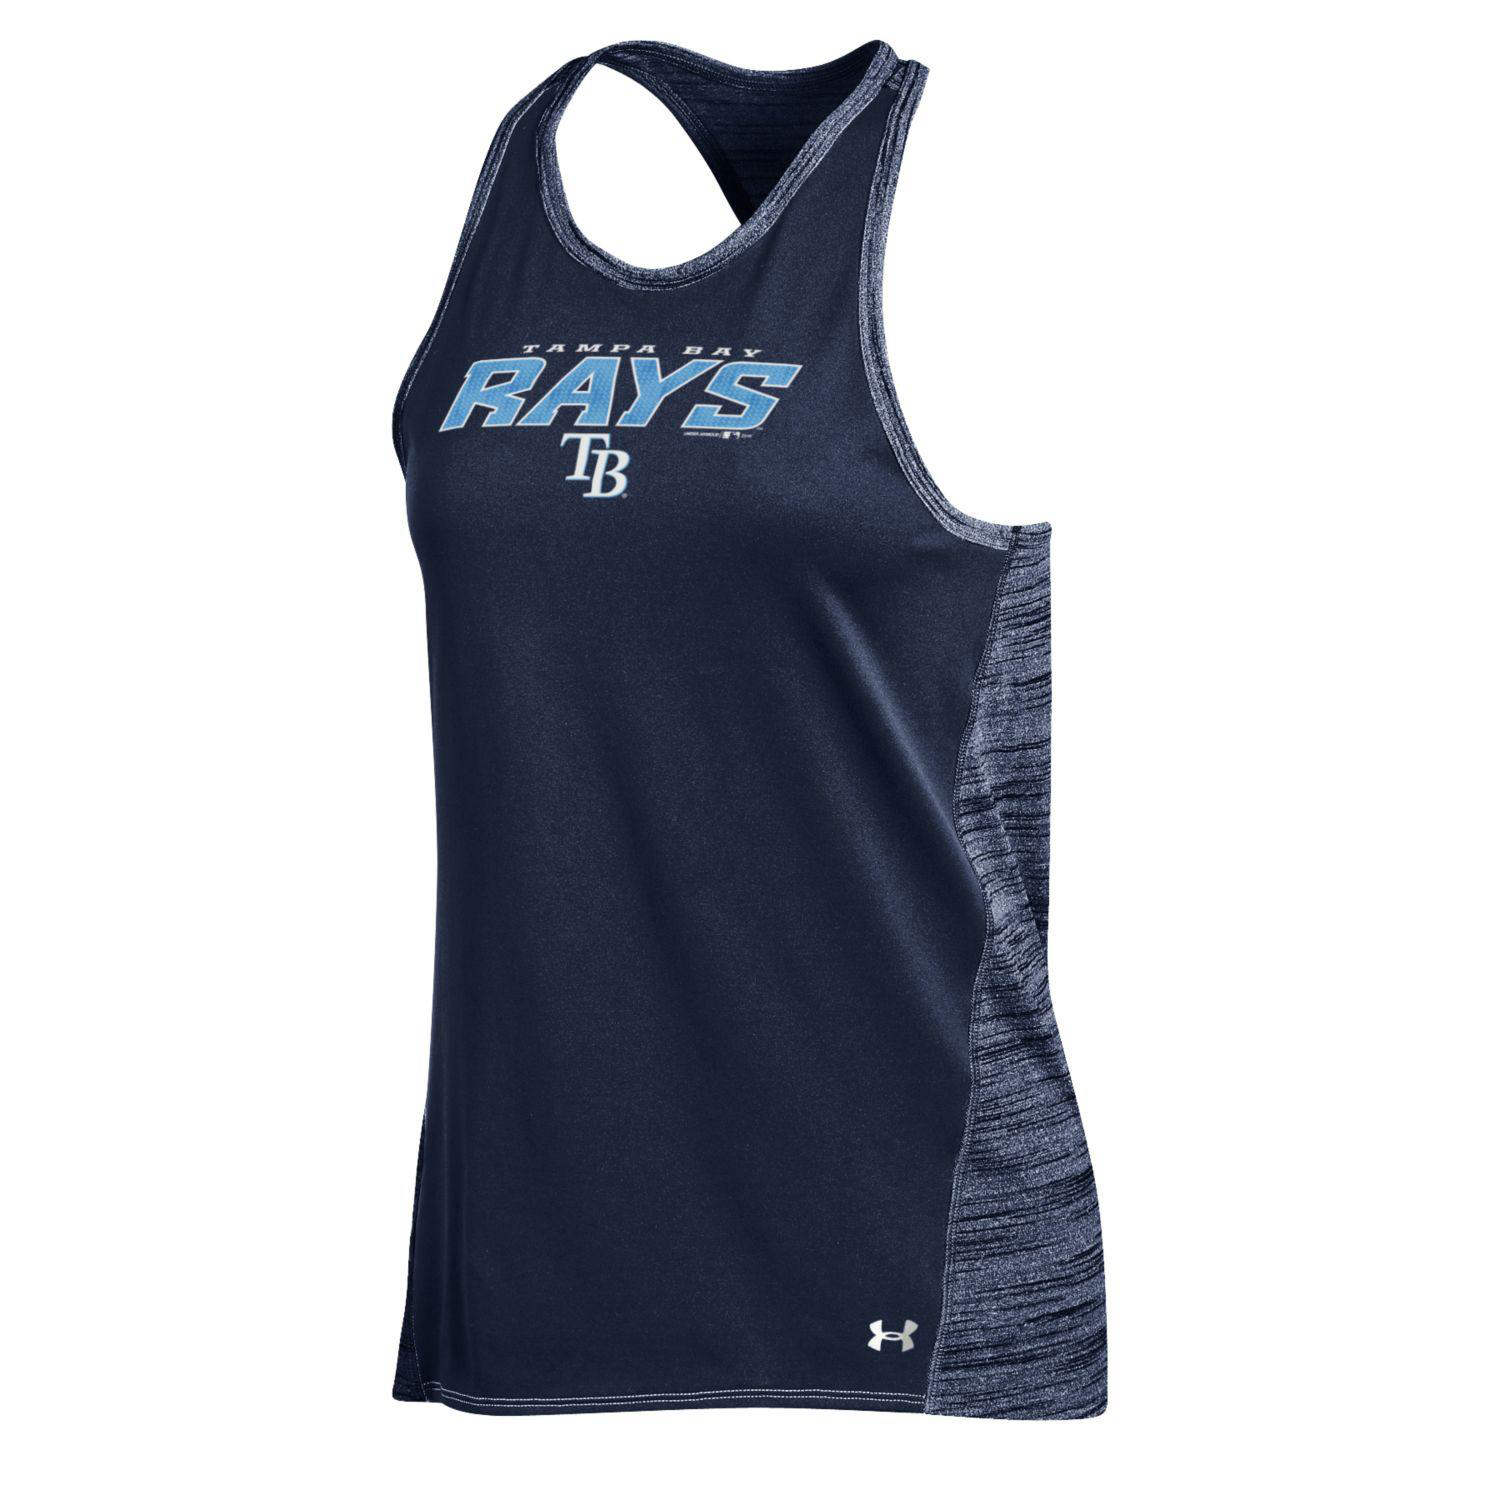 Tampa Bay Rays Under Armour Women's Performance Tank Top Navy by Gear For Sports/Under Armour